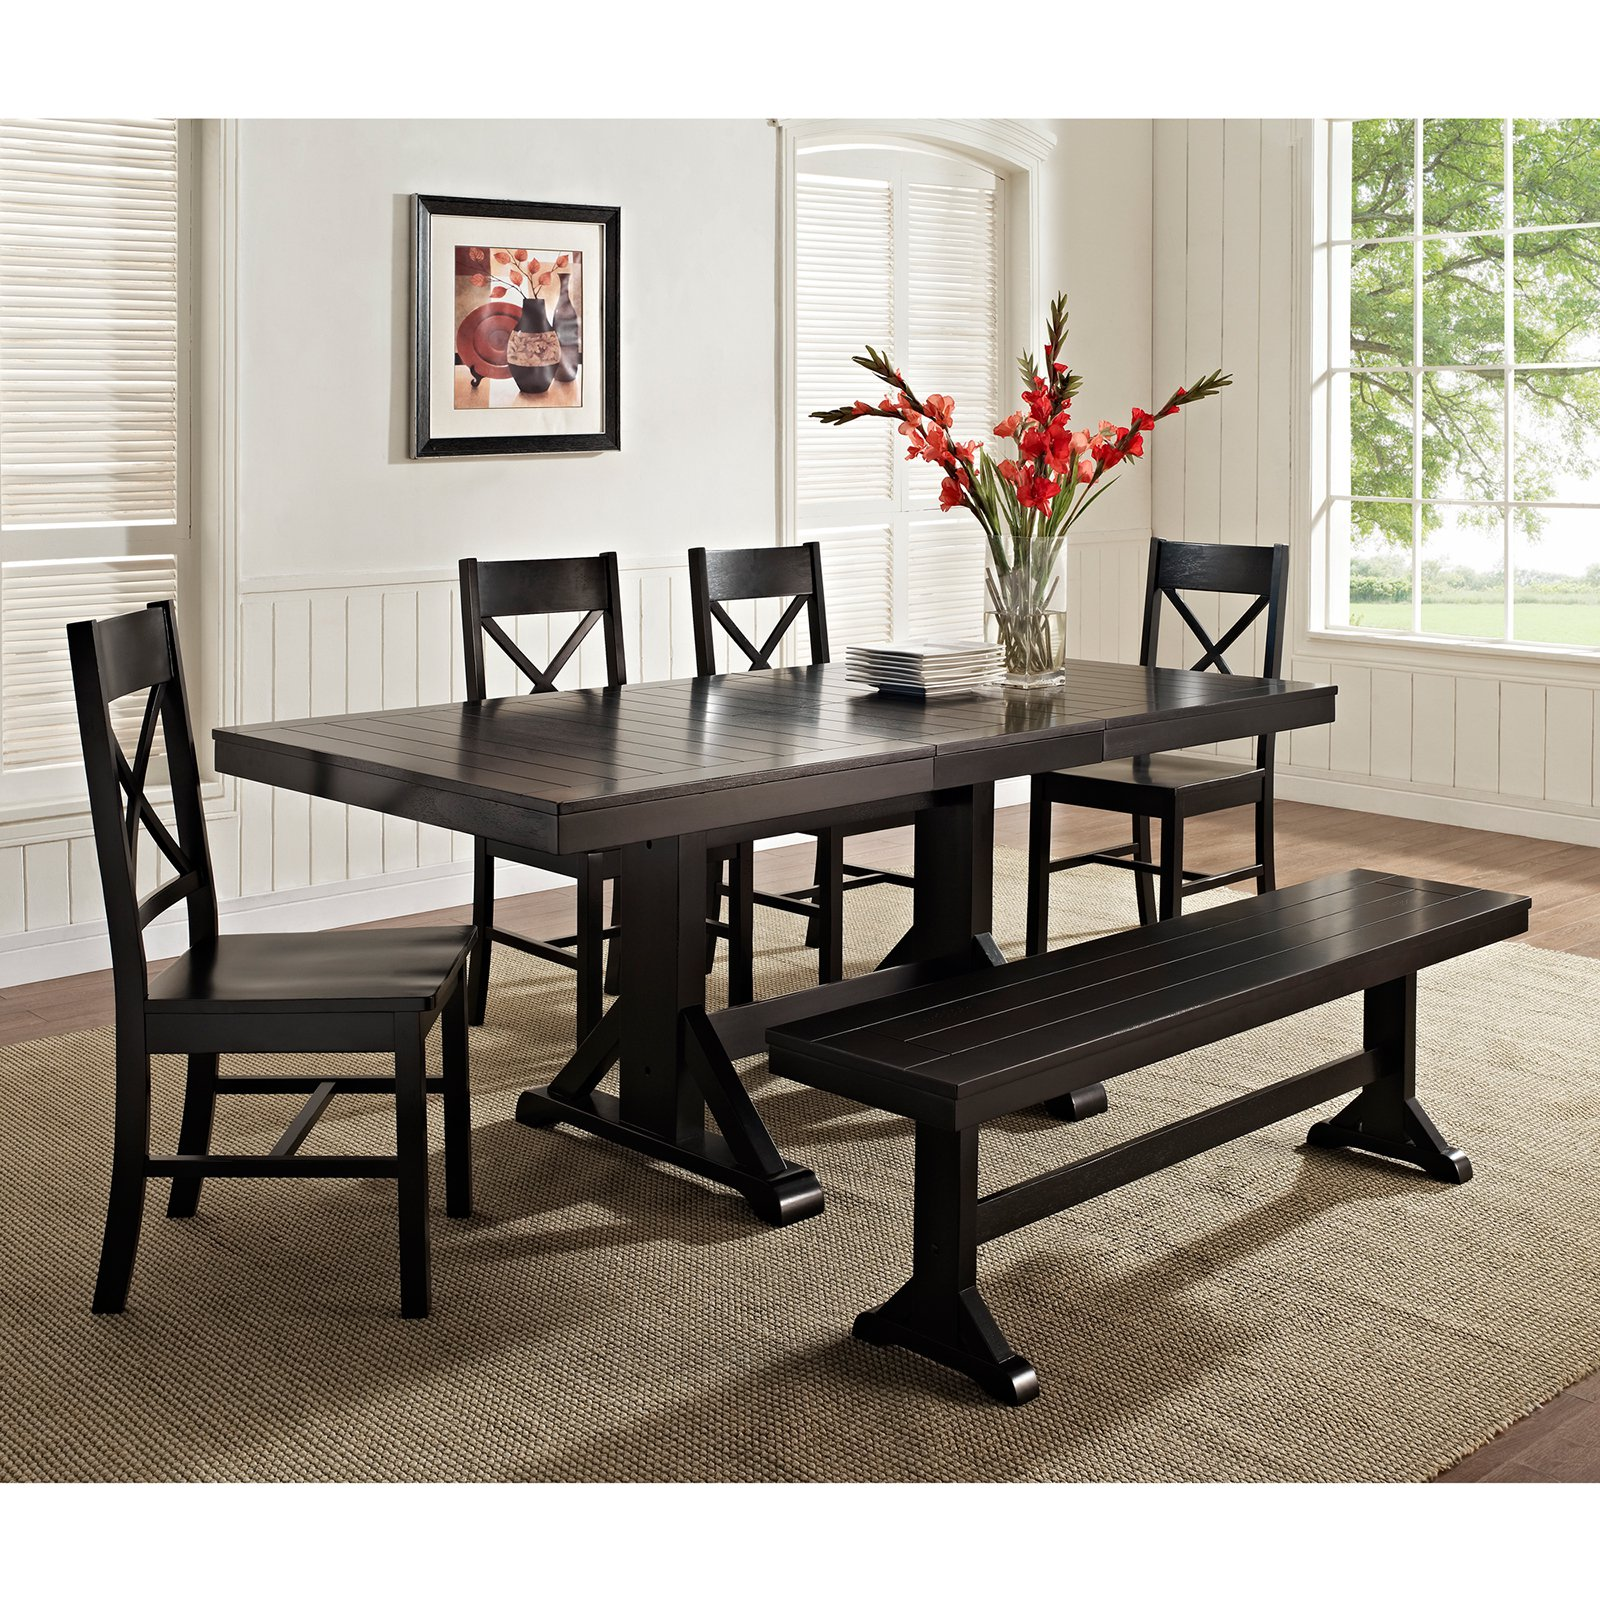 Captivating Walker Edison Black 6 Piece Solid Wood Dining Set With Bench   Walmart.com